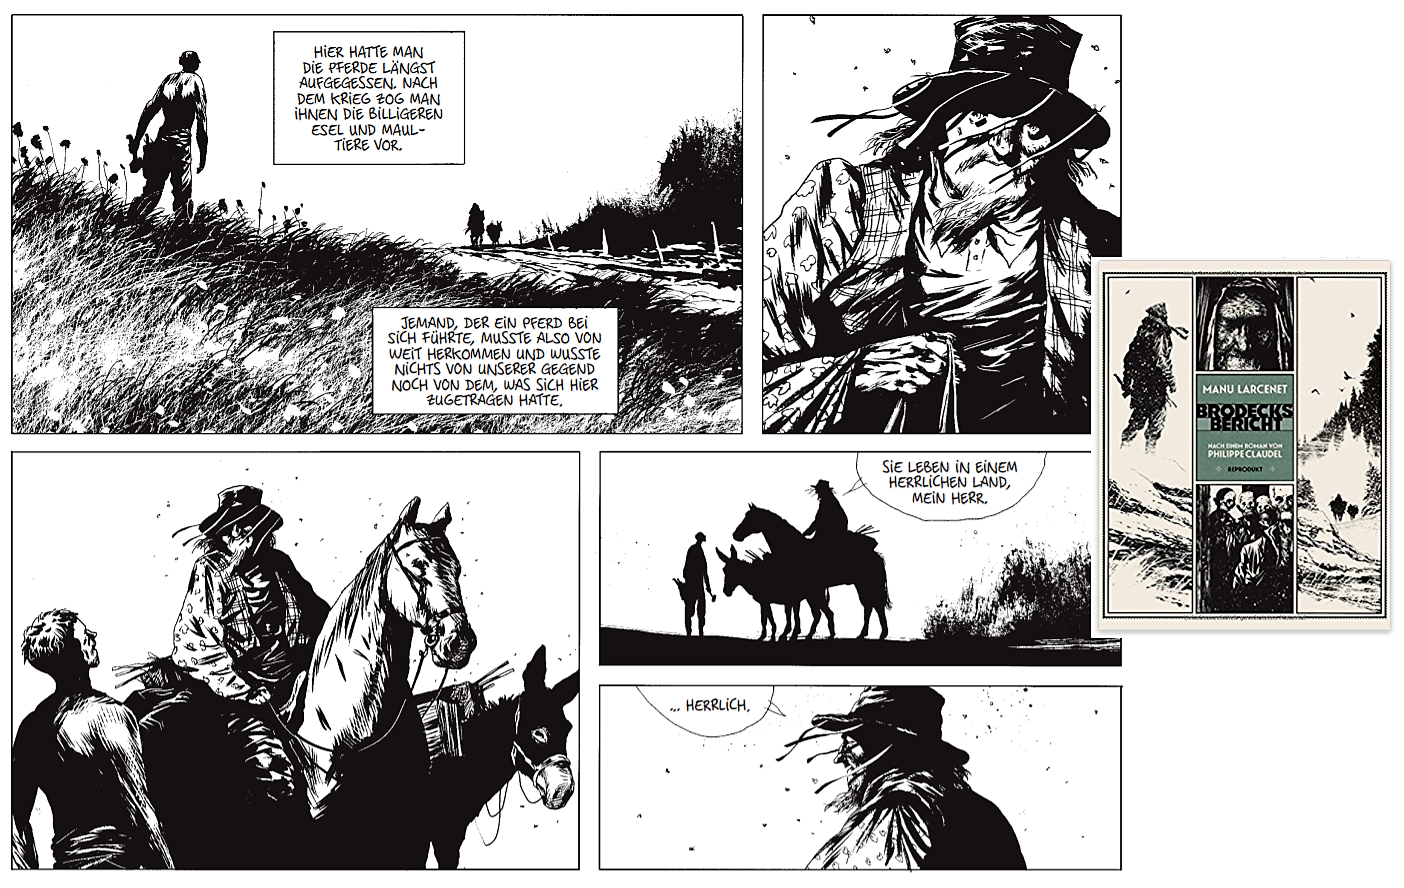 Graphic Novels | stefan mesch